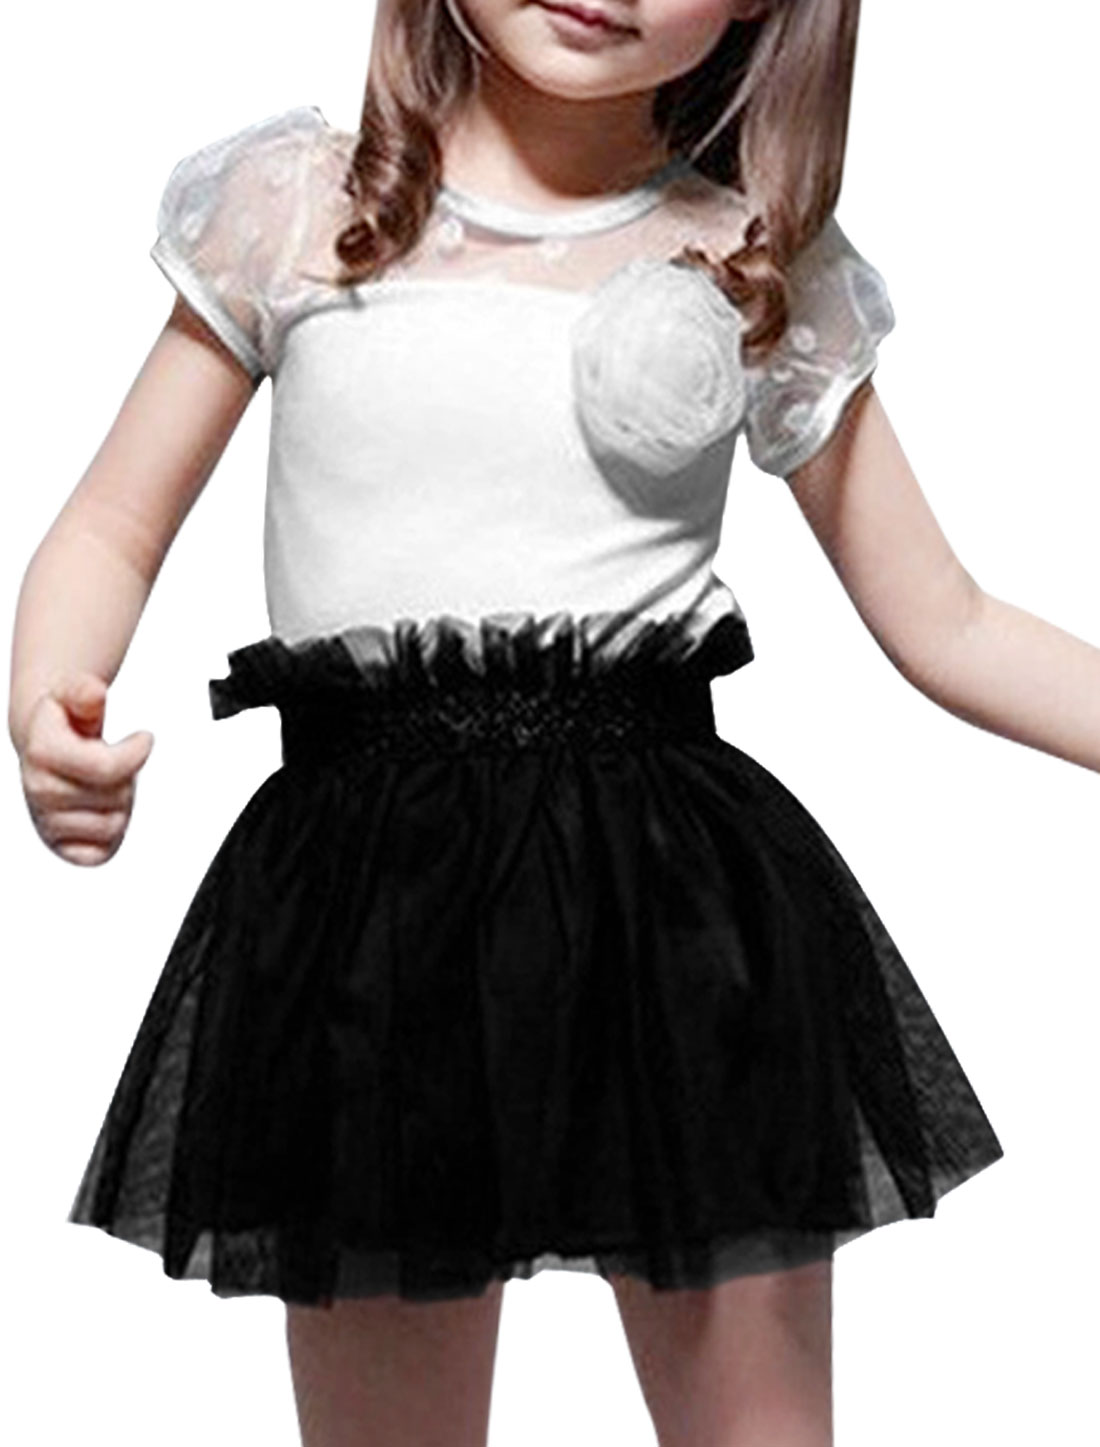 Baby Girls Round Neck Cap Sleeve Elastic Waist Dress White Black 4